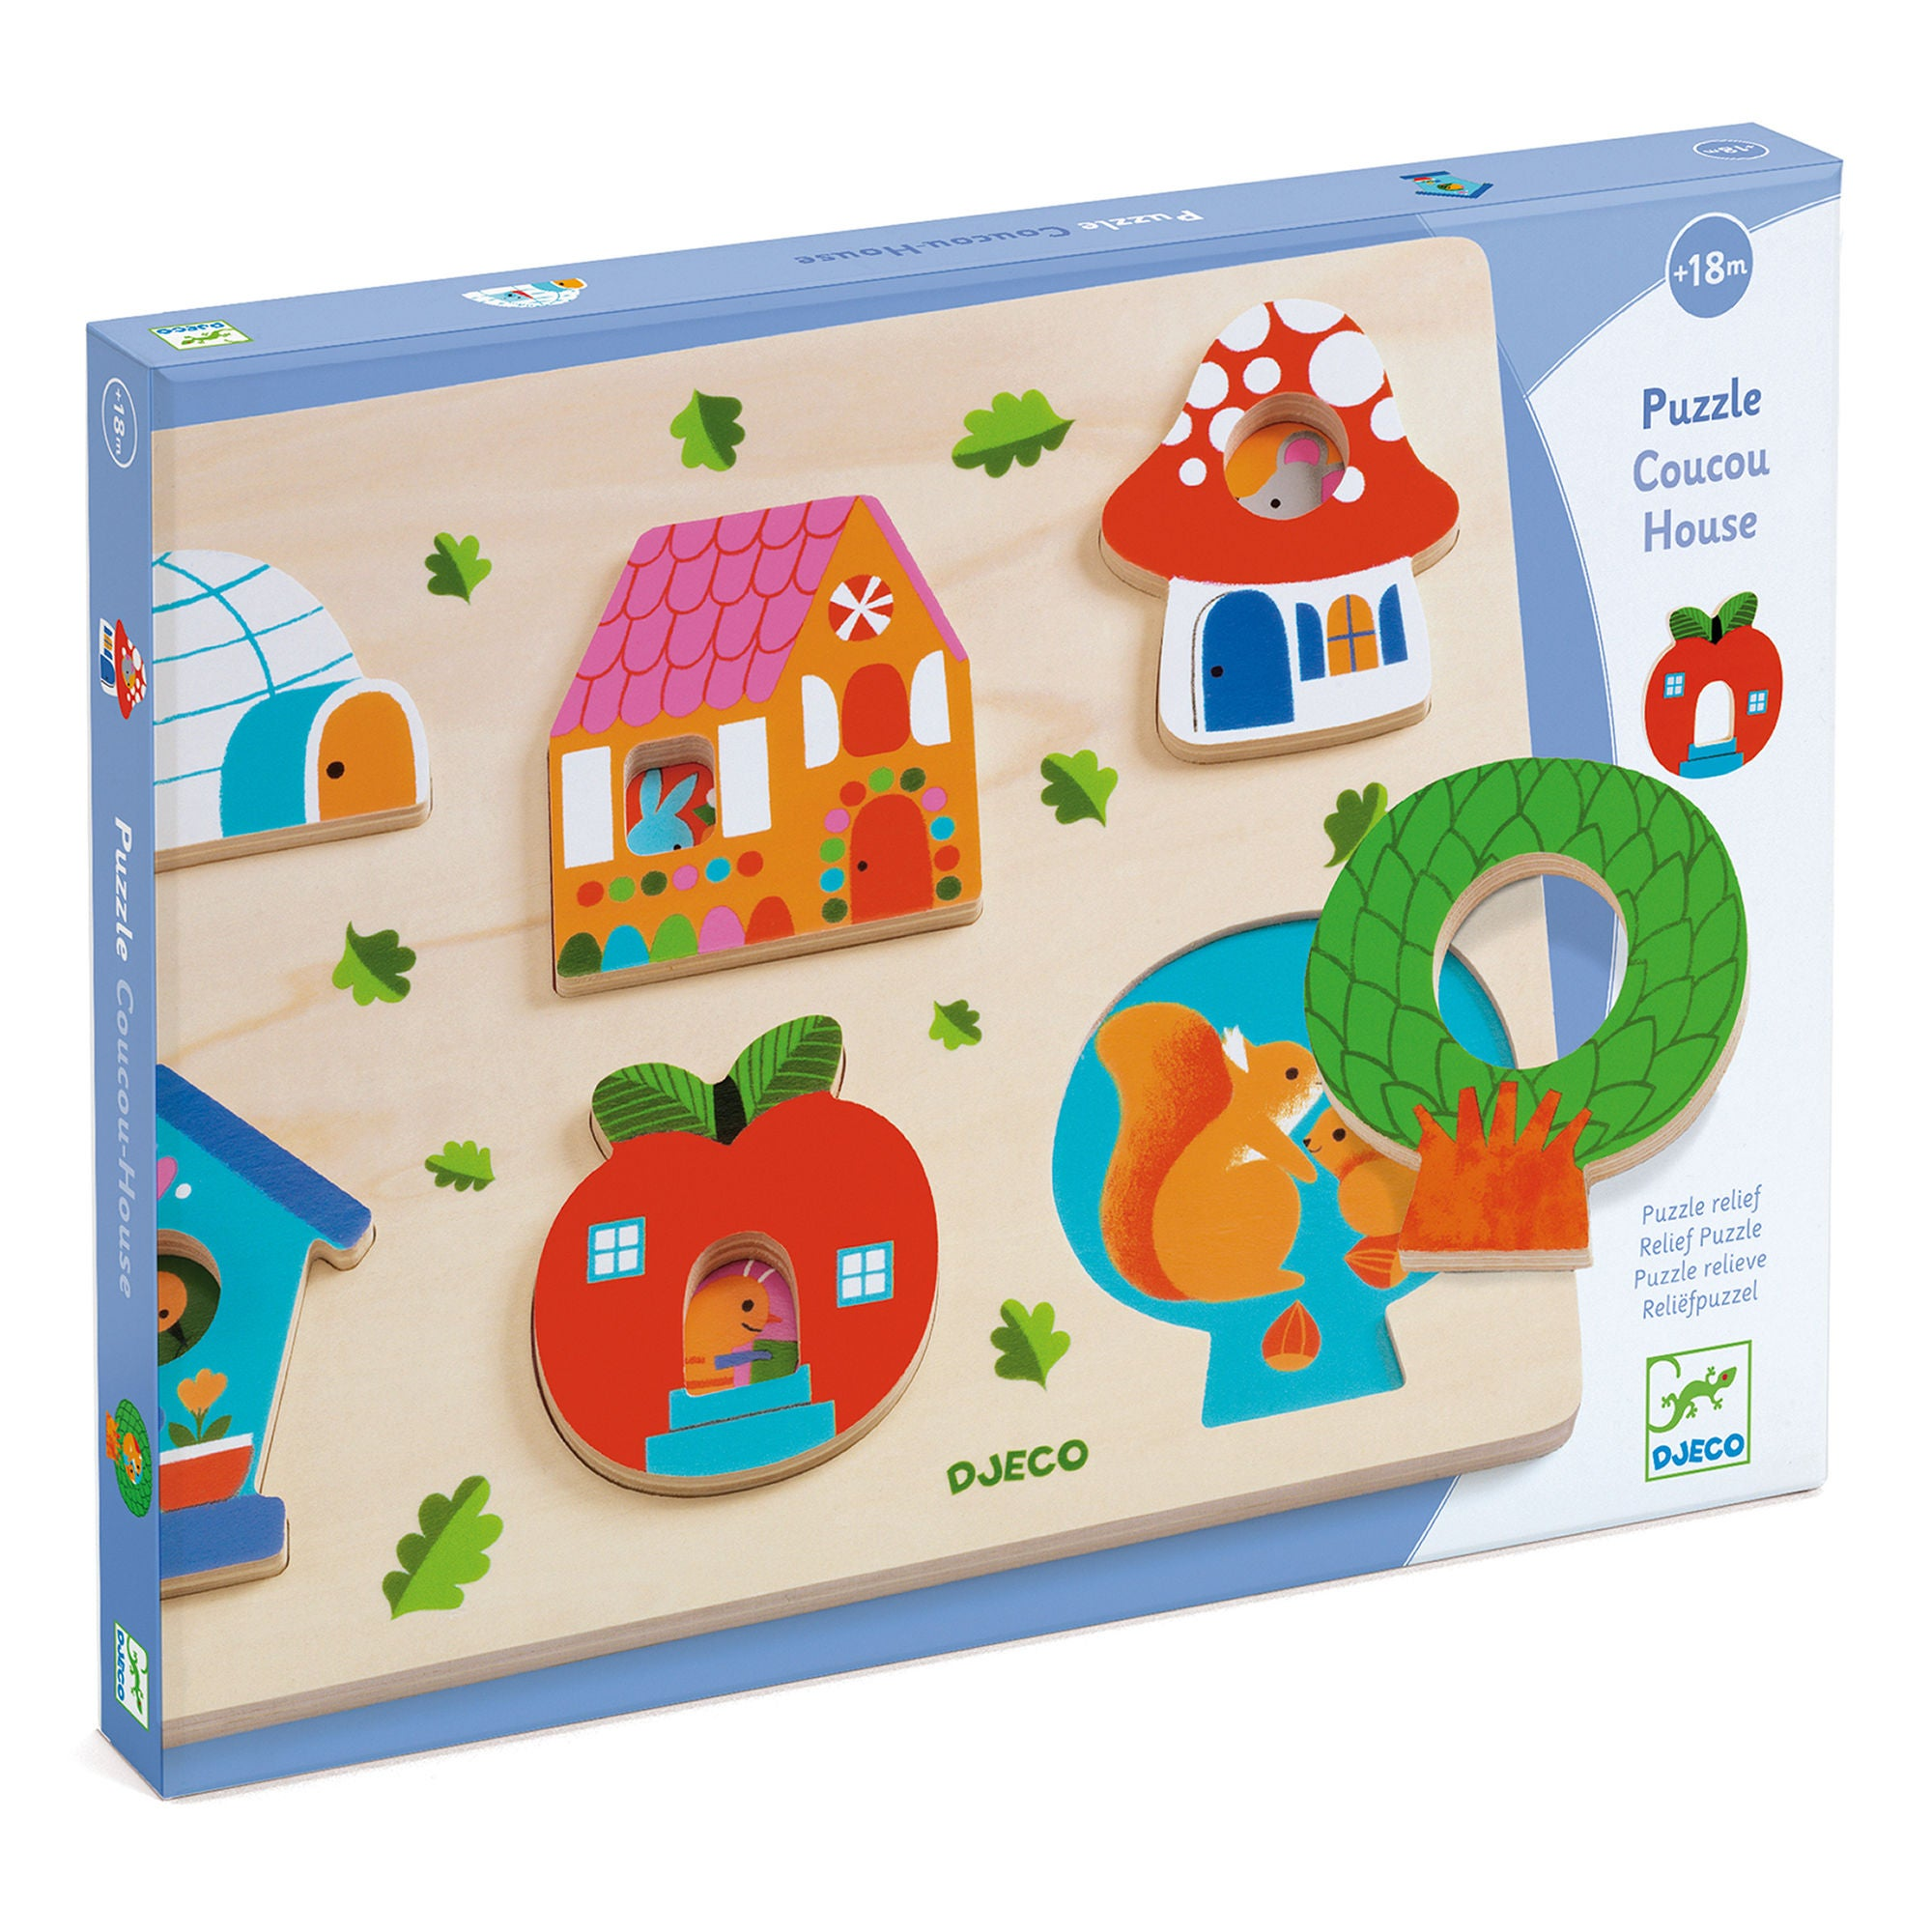 Djeco Pussel RELIEF PUZZLE - Coucou-House